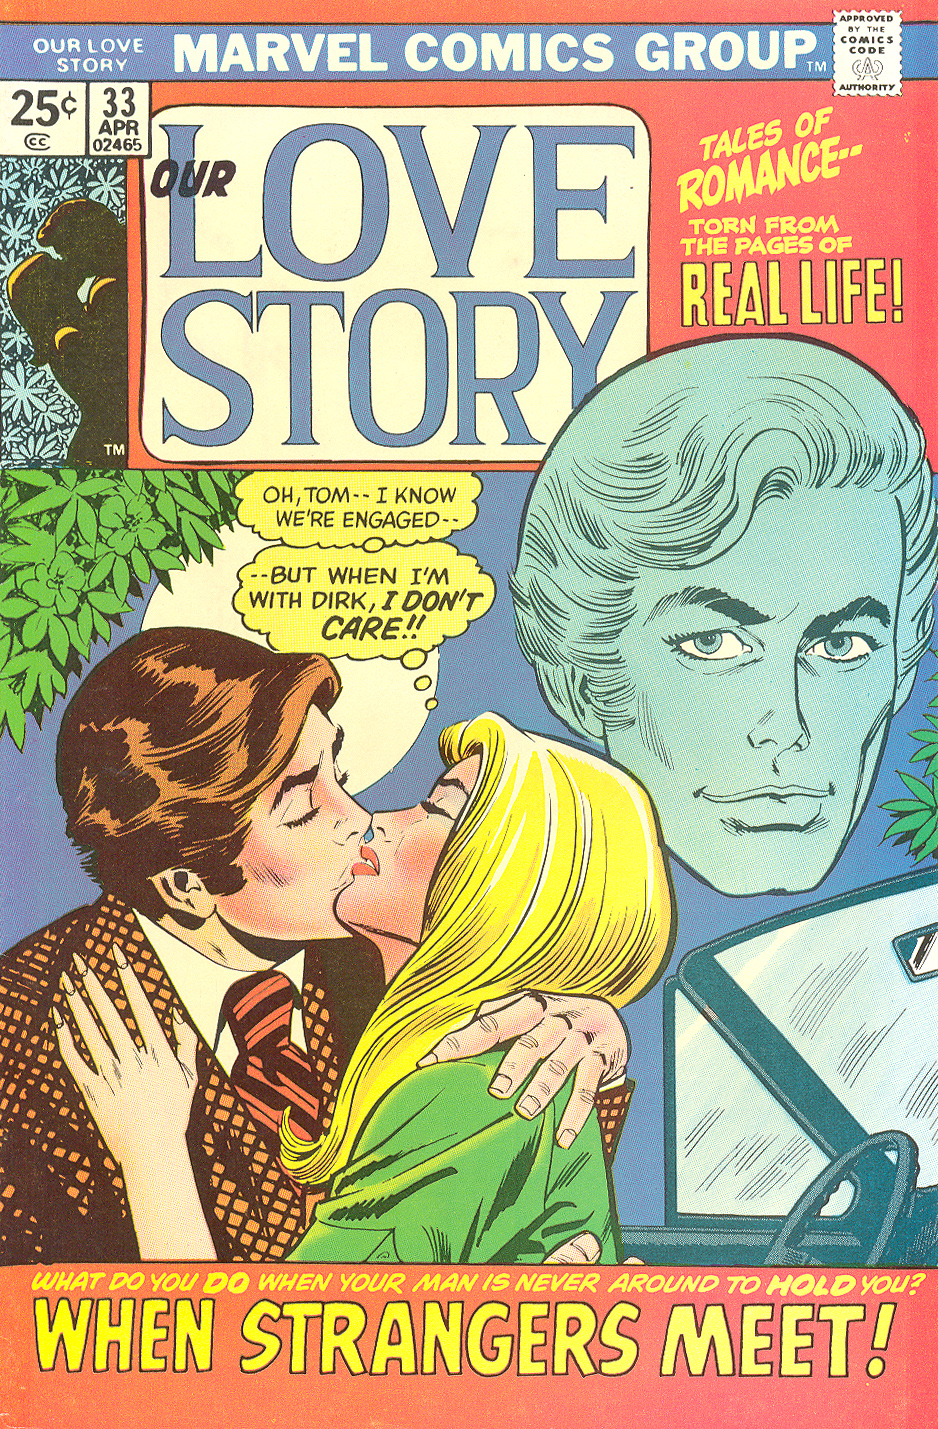 """When Strangers Meet!"" Our Love Story #33 Cover (April 1975) Reprinted from My Love #20 (November 1972) Pencils: Jim Starlin, Inks: Mike Esposito"